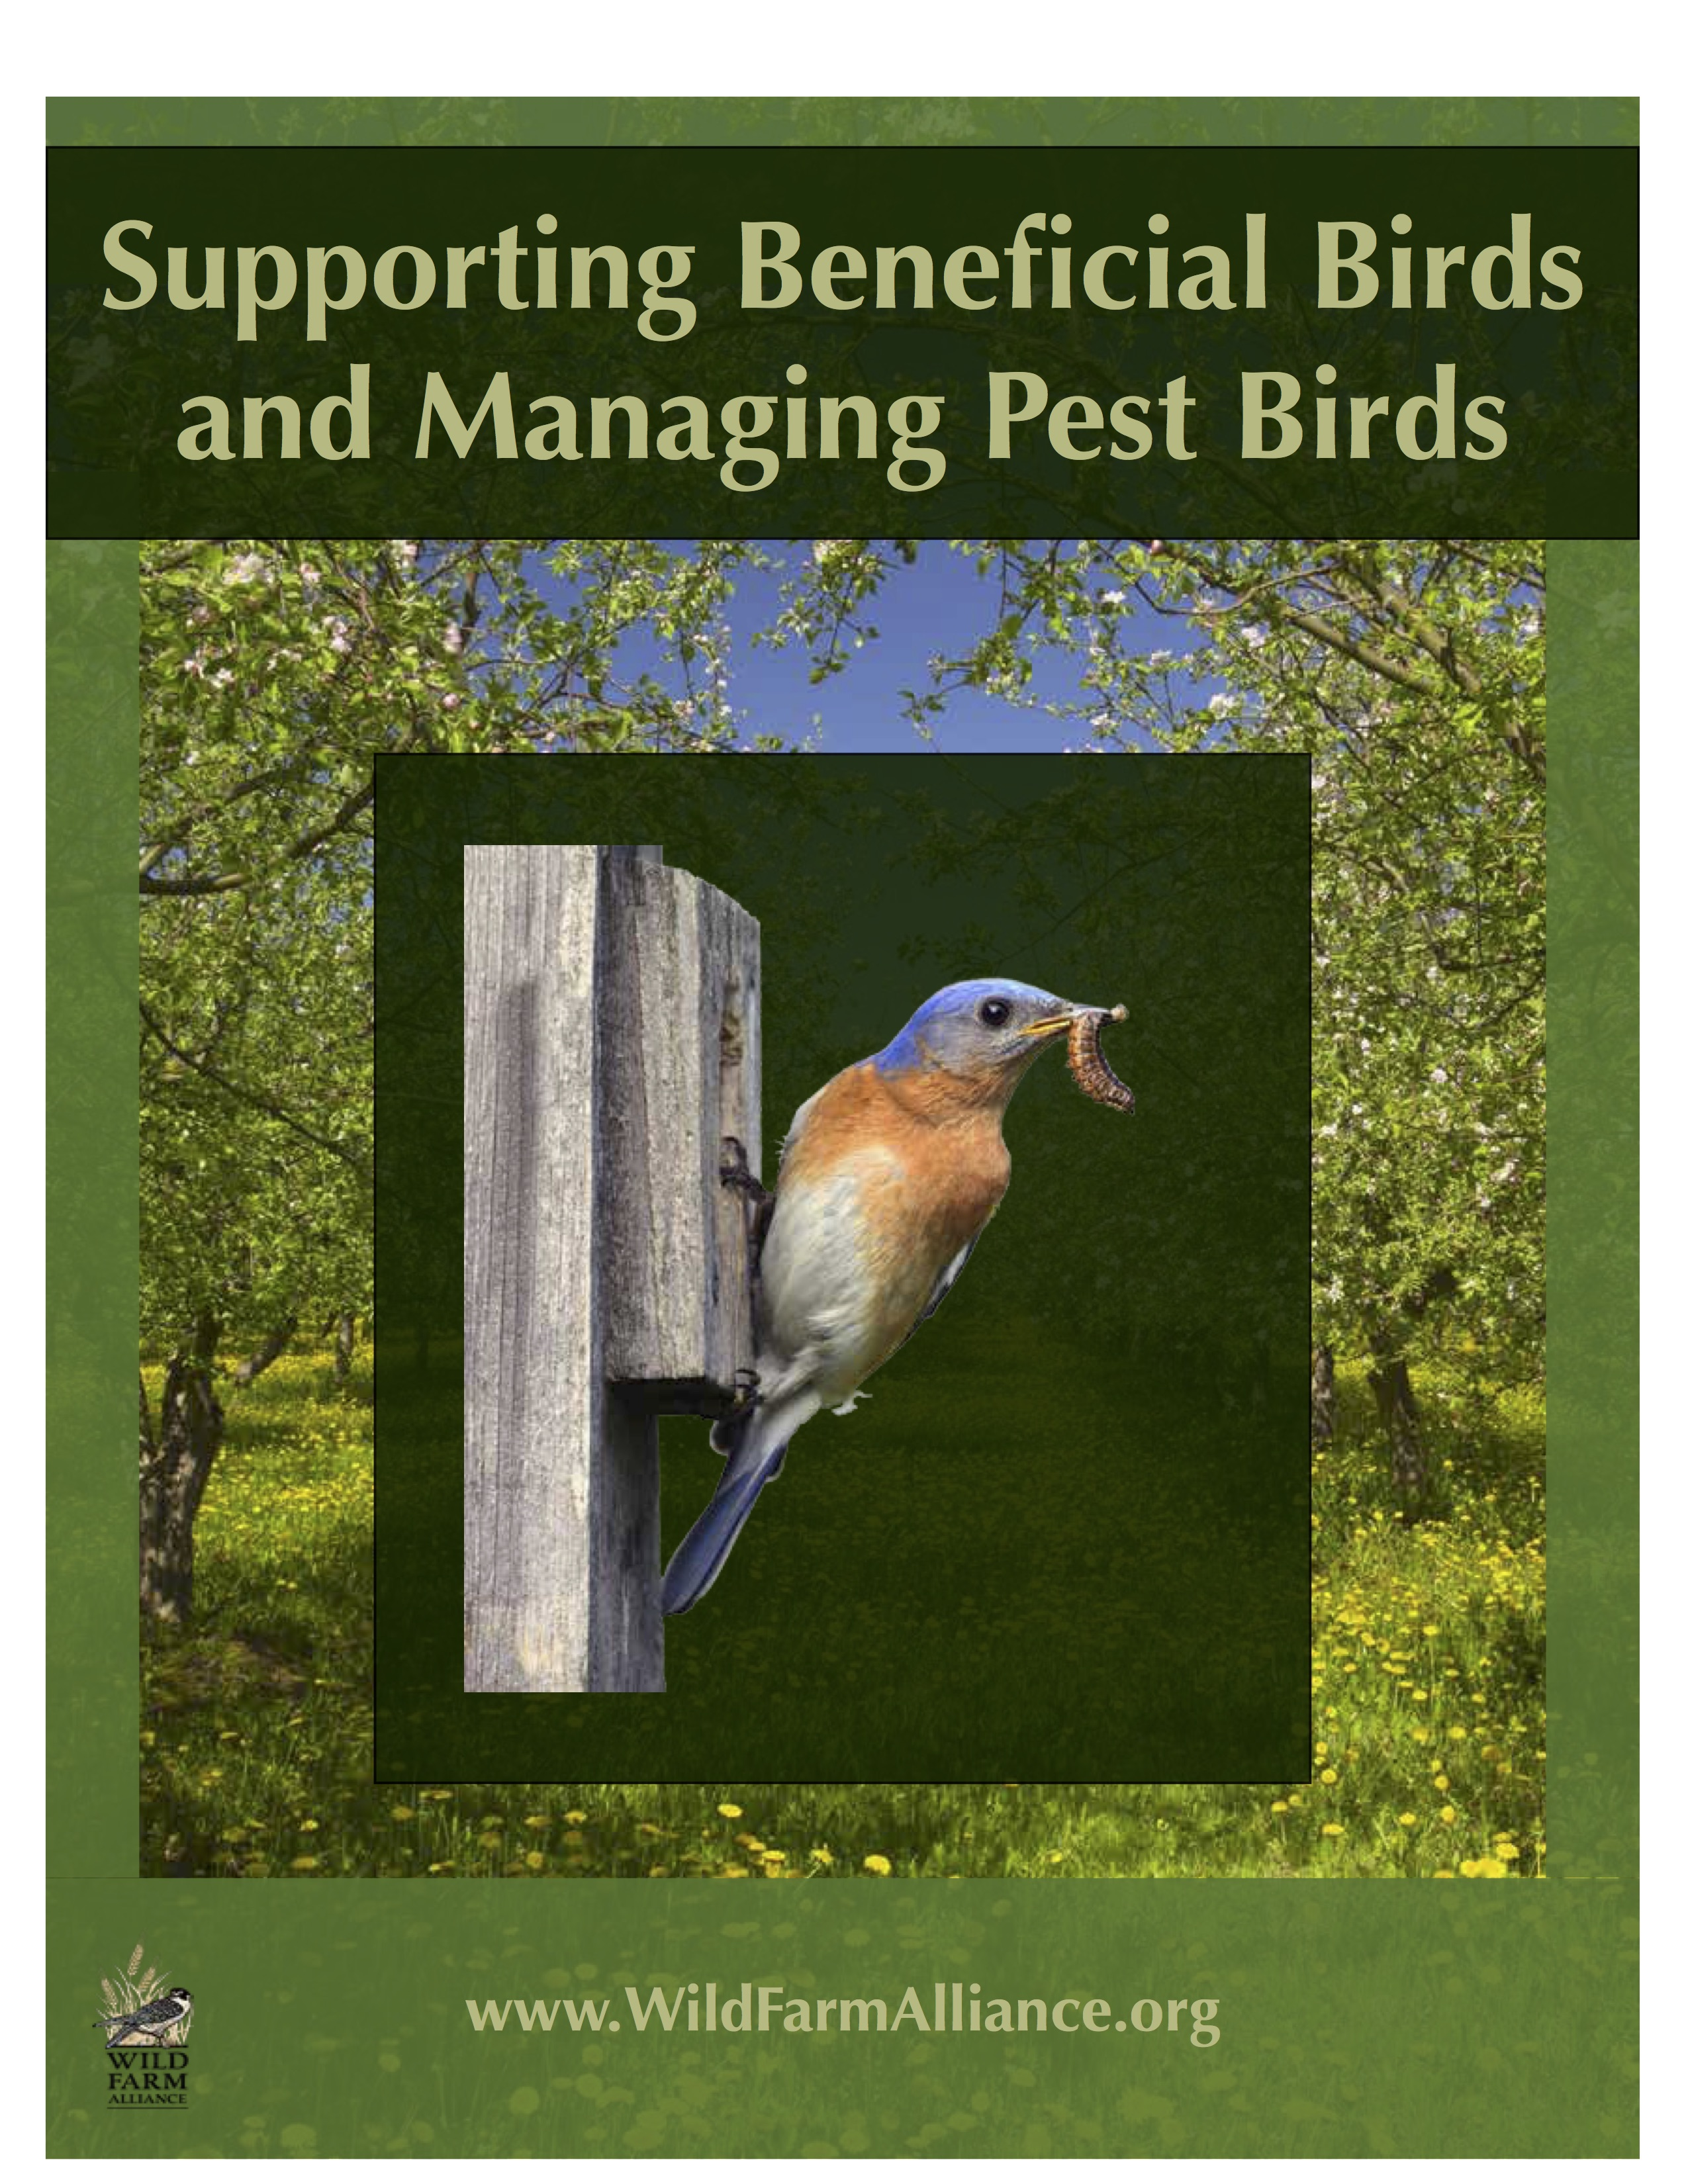 Bird_Guide_Cover_Image.jpg